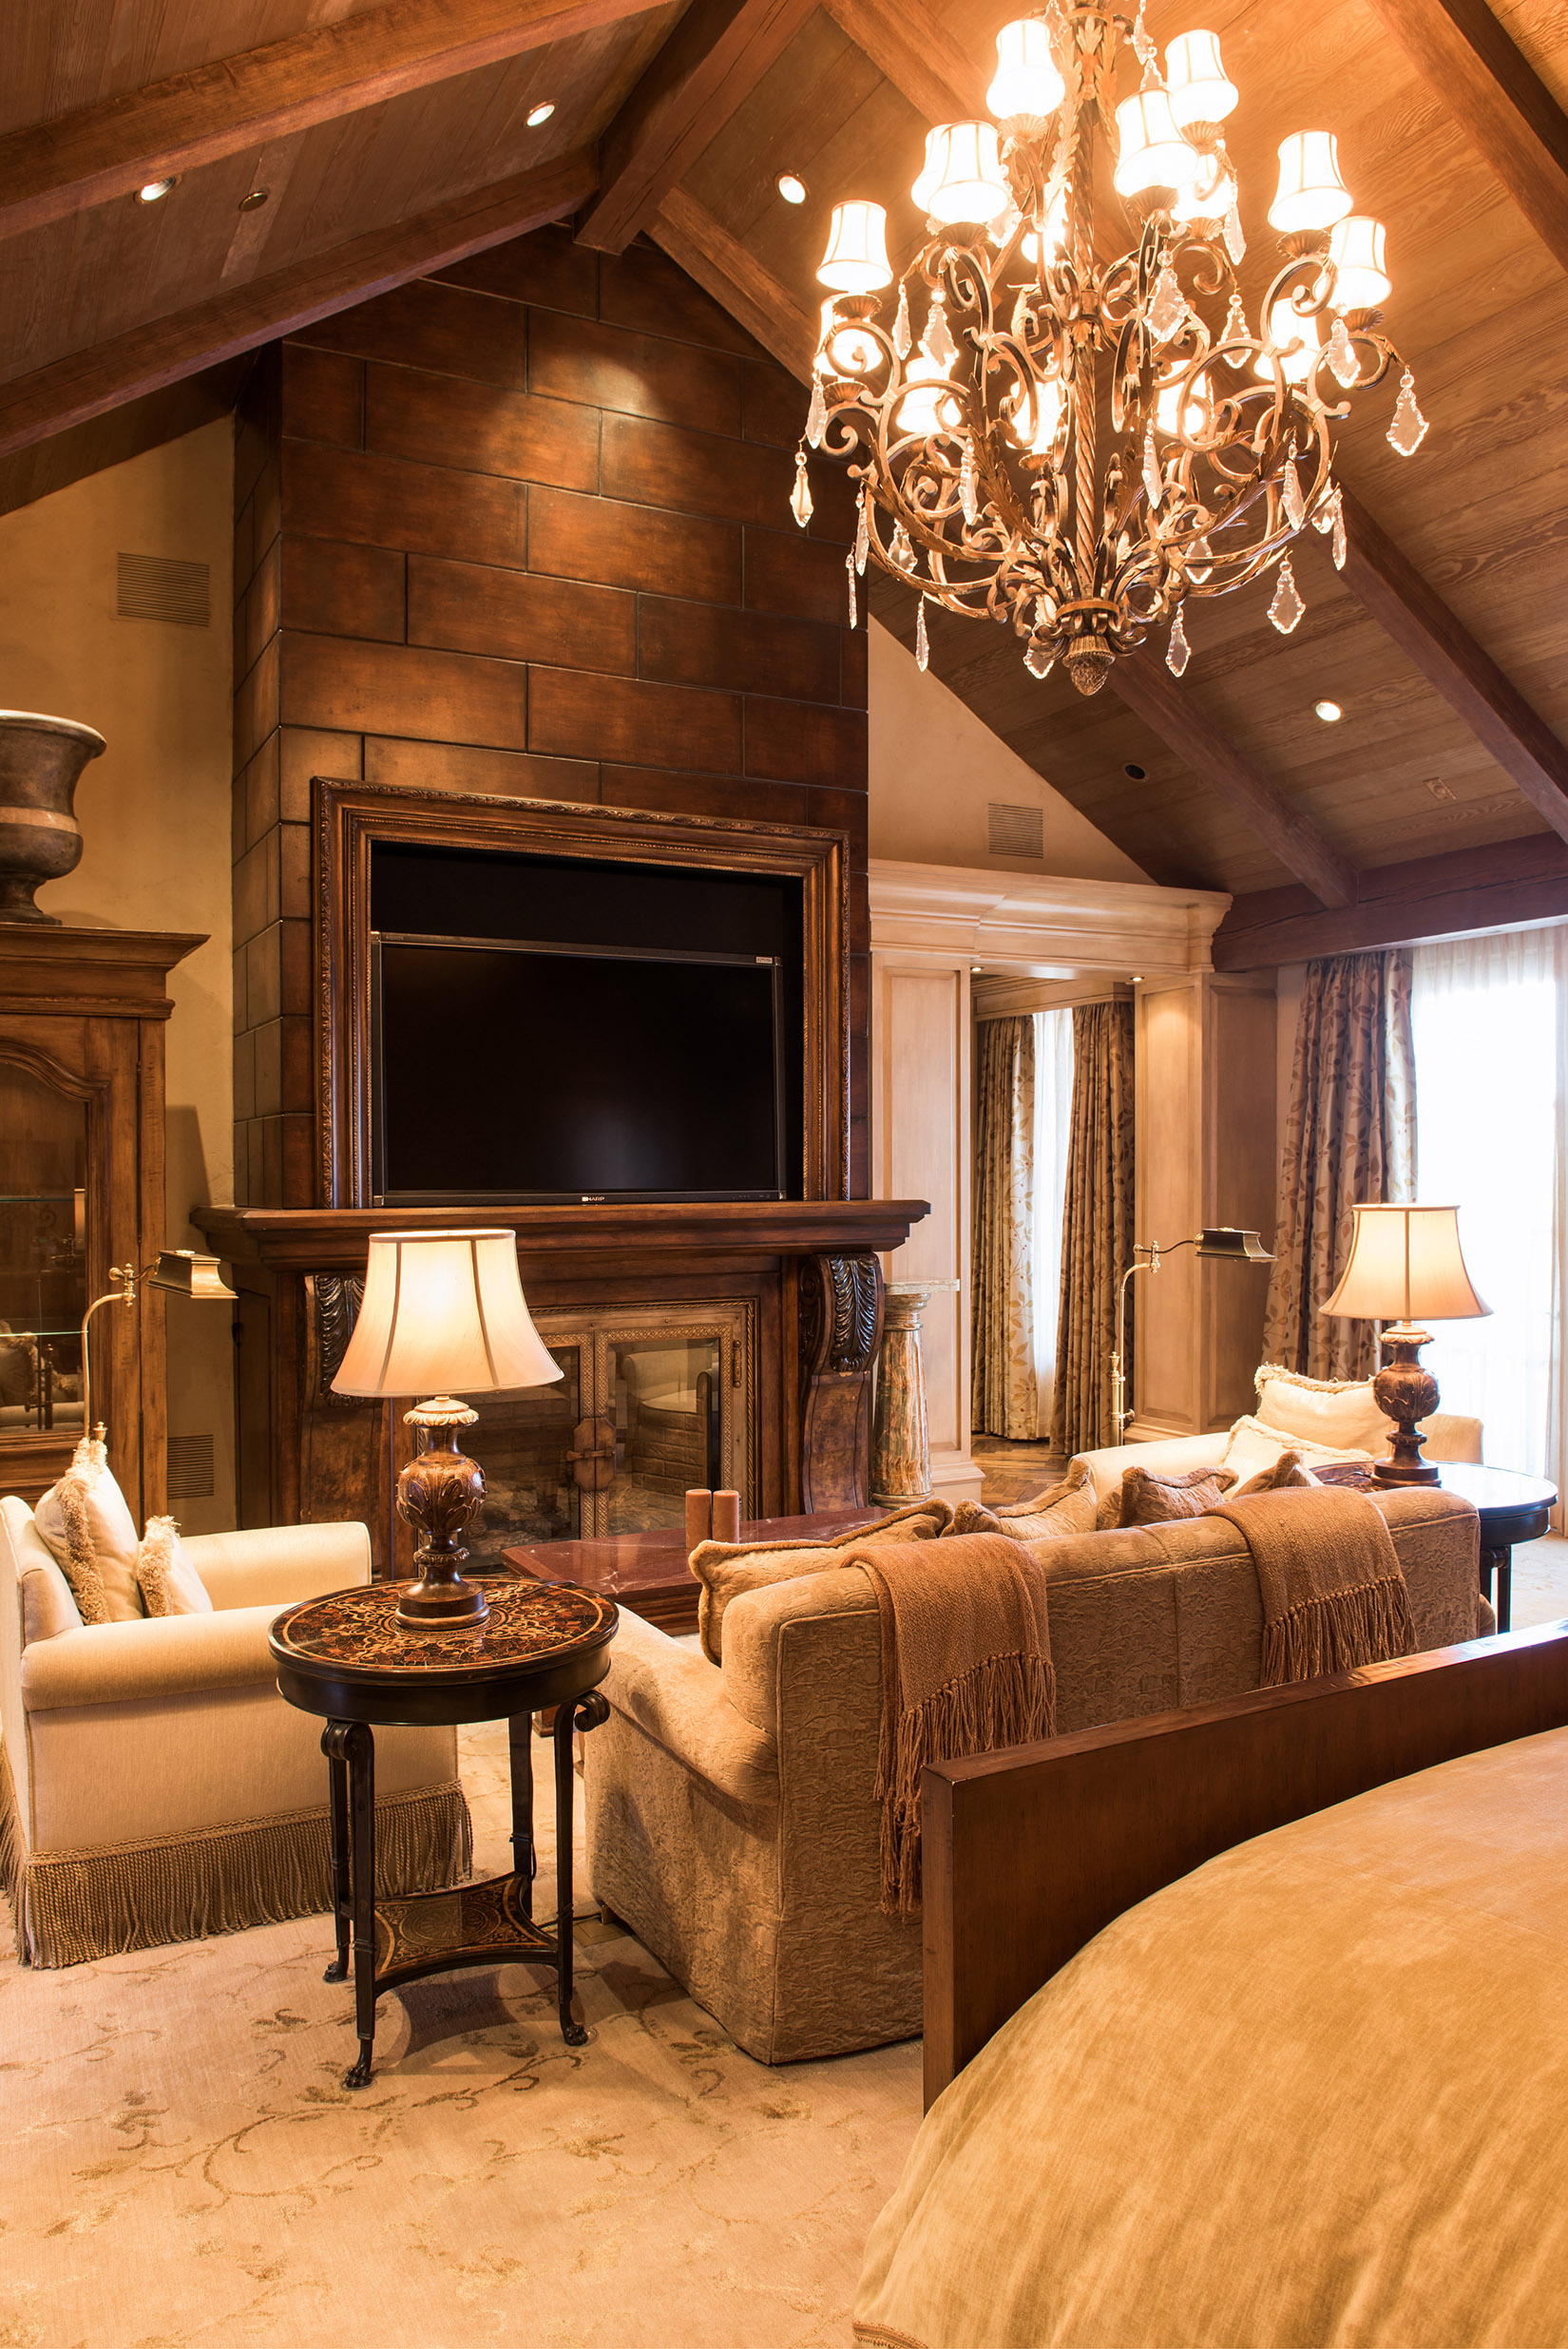 The master bedroom is a great place to relax with the tall, vaulted ceilings and grand fireplace.